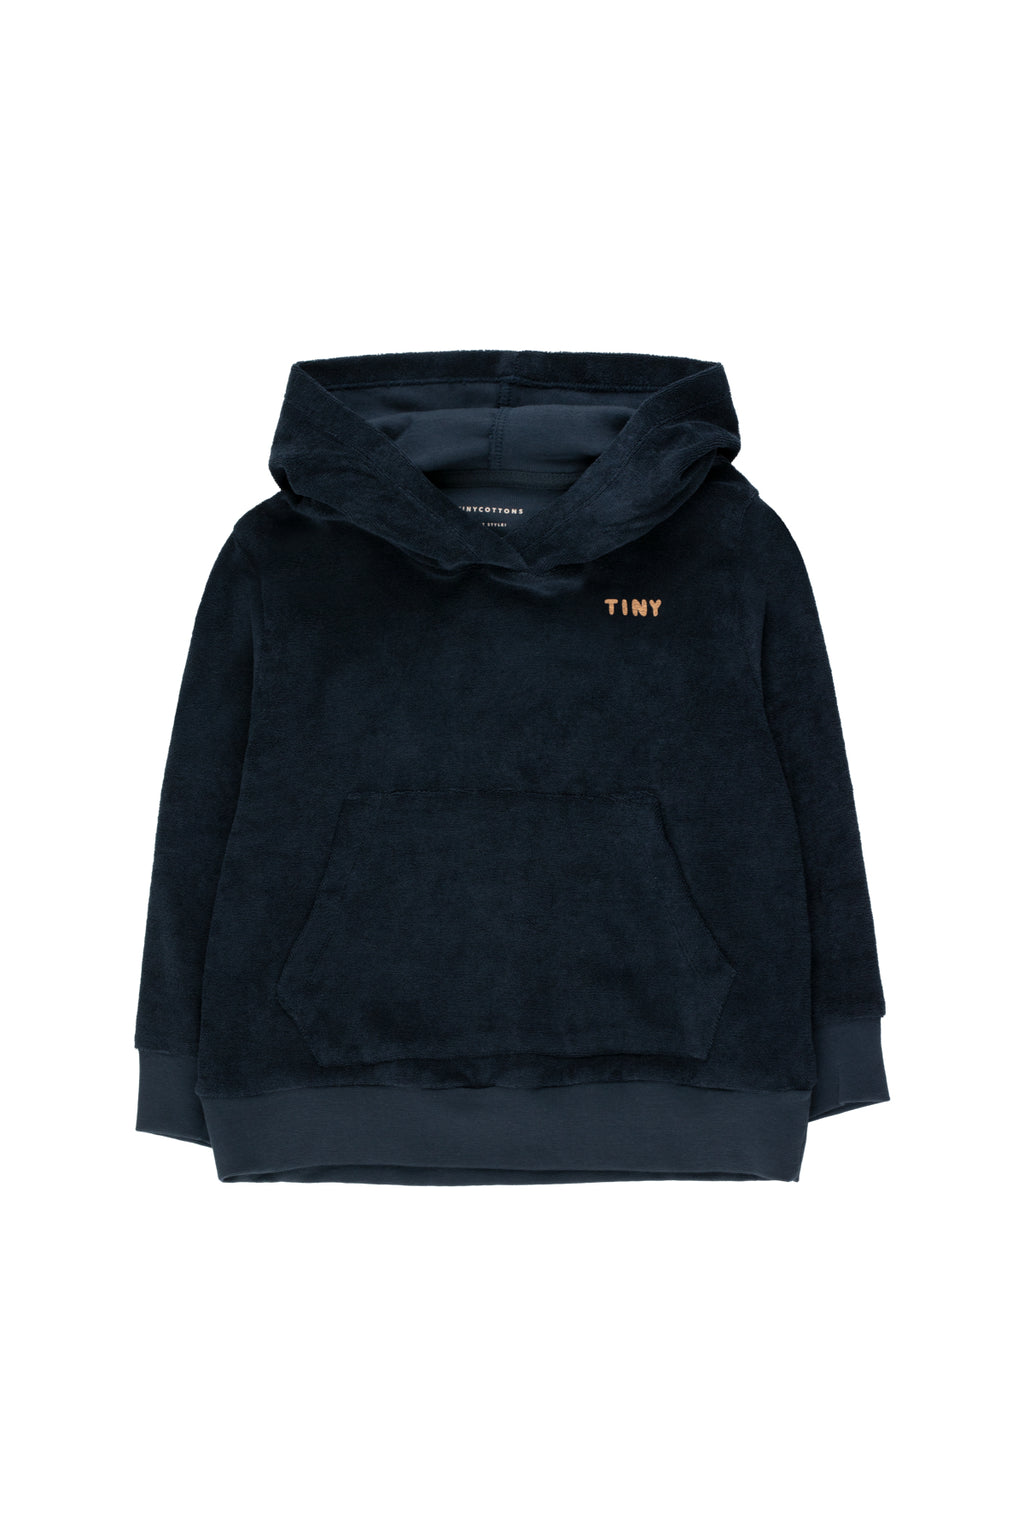 Tiny Cottons Pretzel Ride Hoody Sweatshirt - Navy/Camel